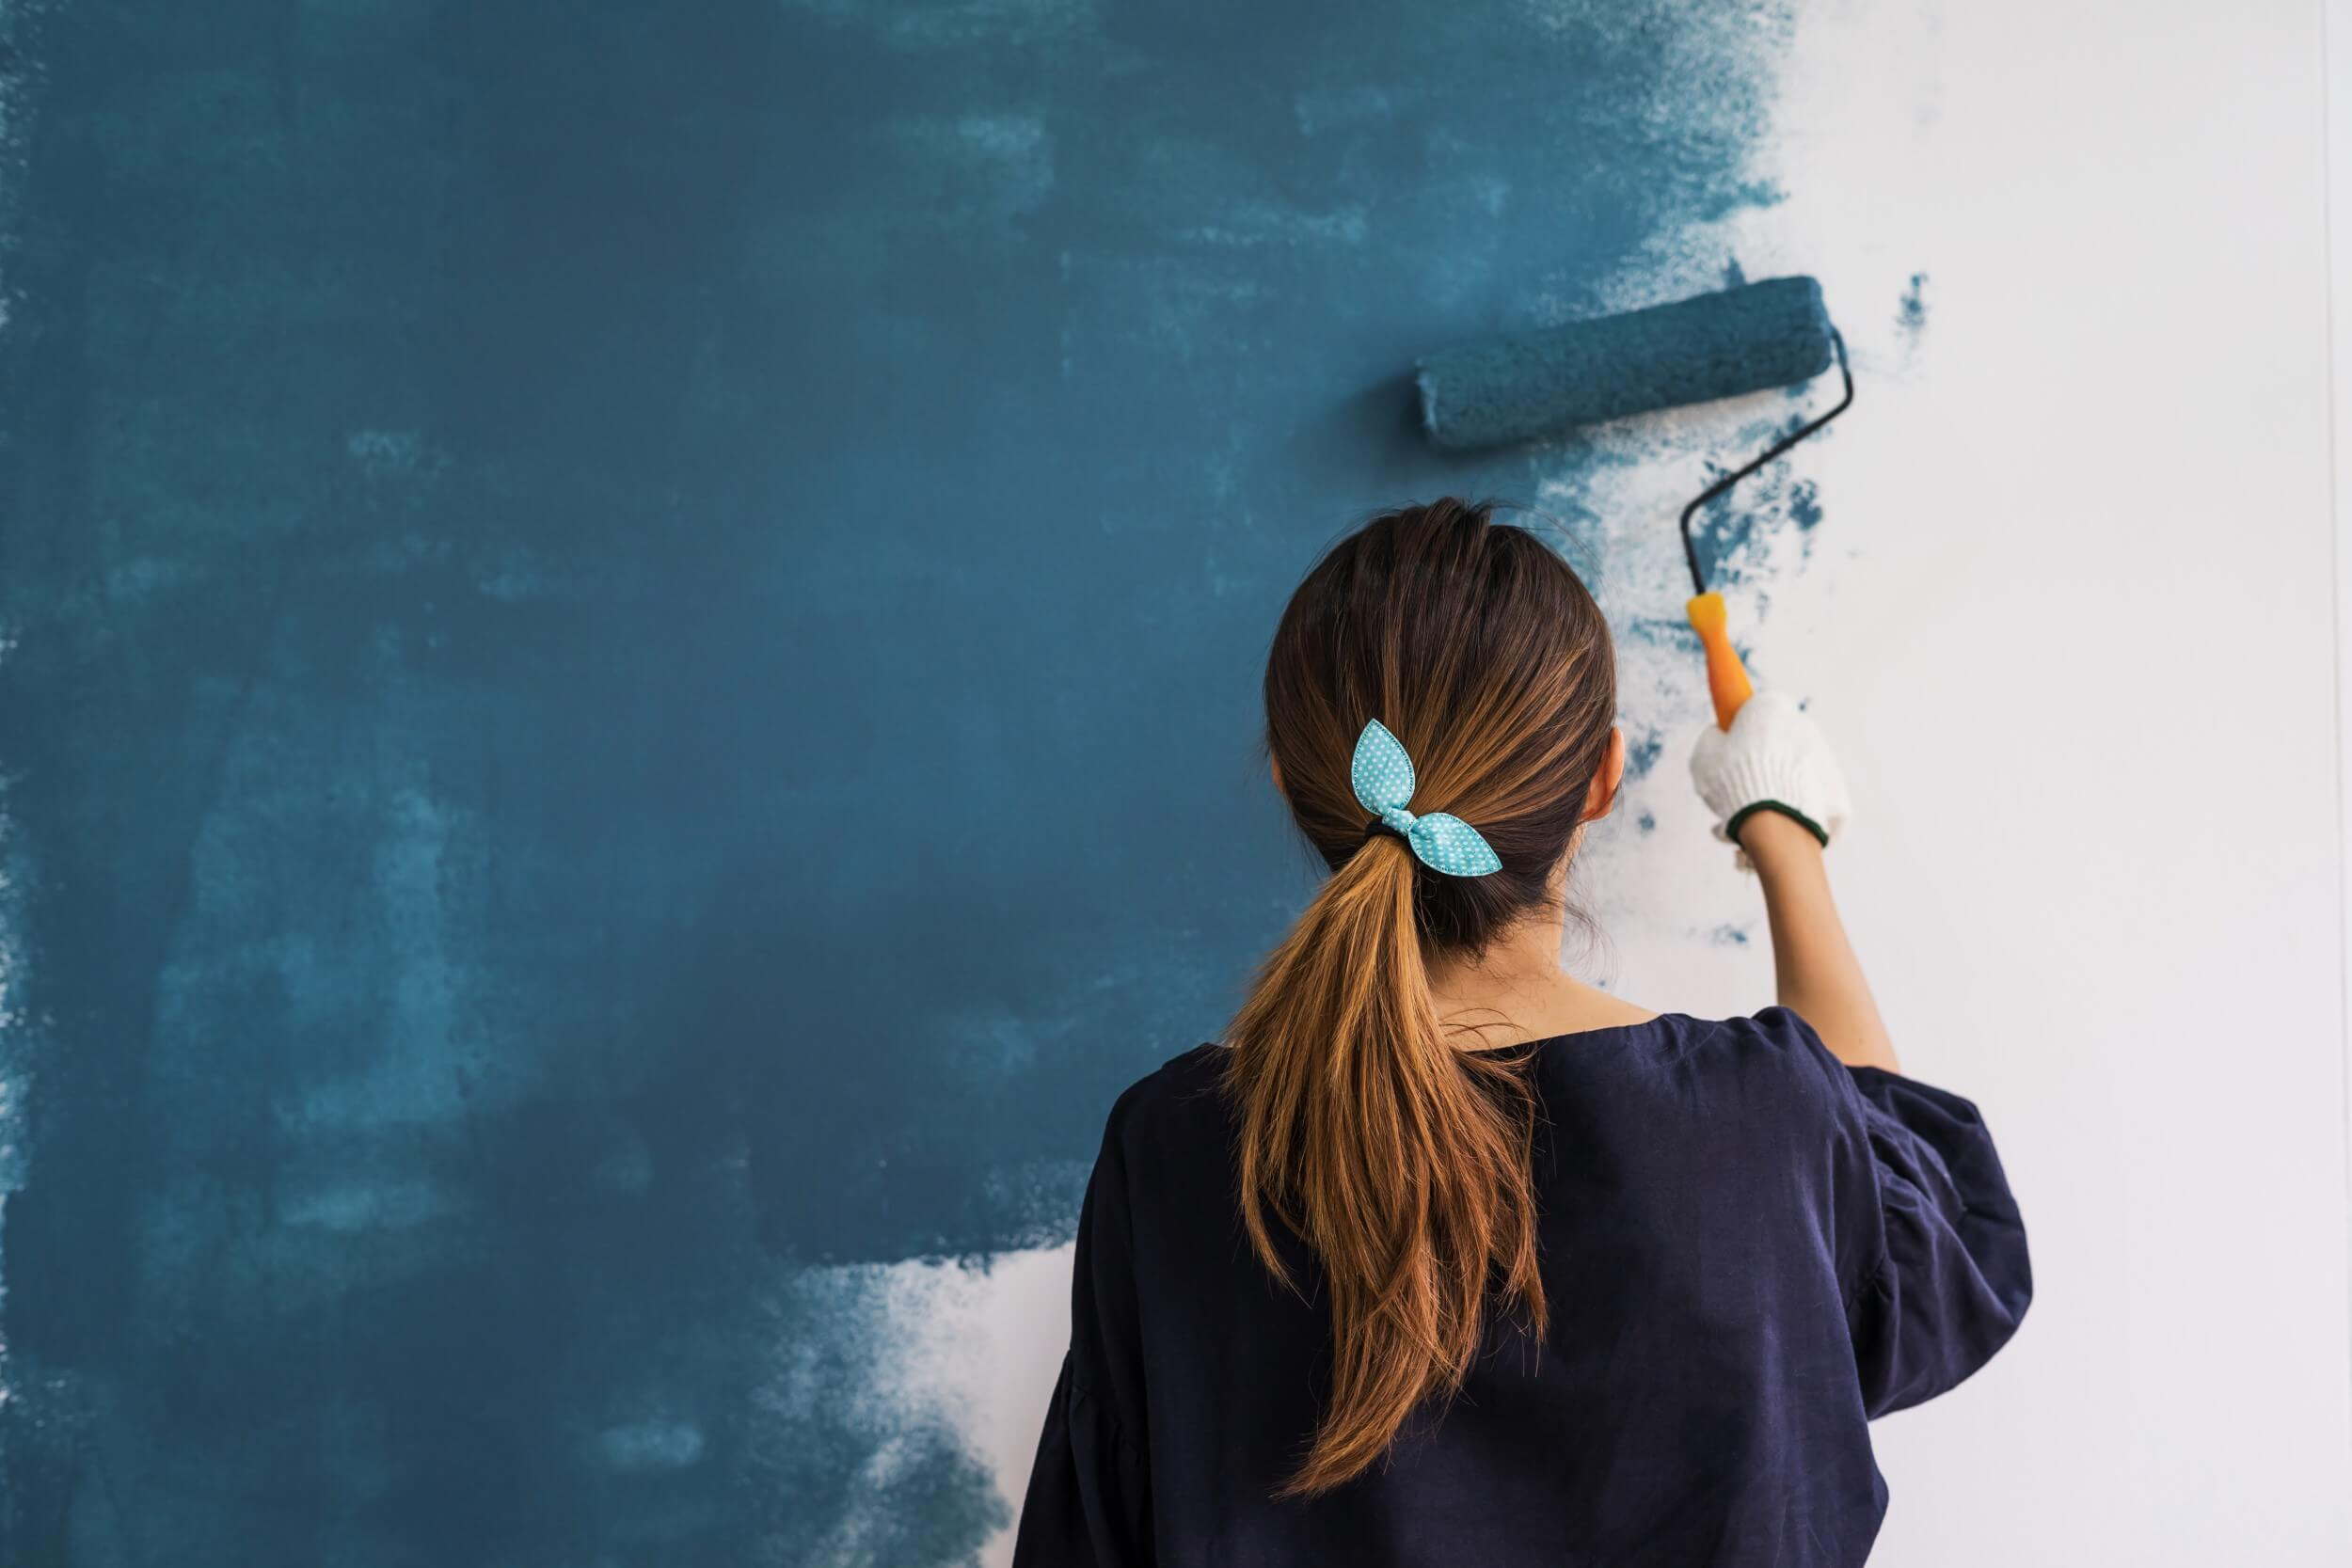 5 Home Improvements to Make Now